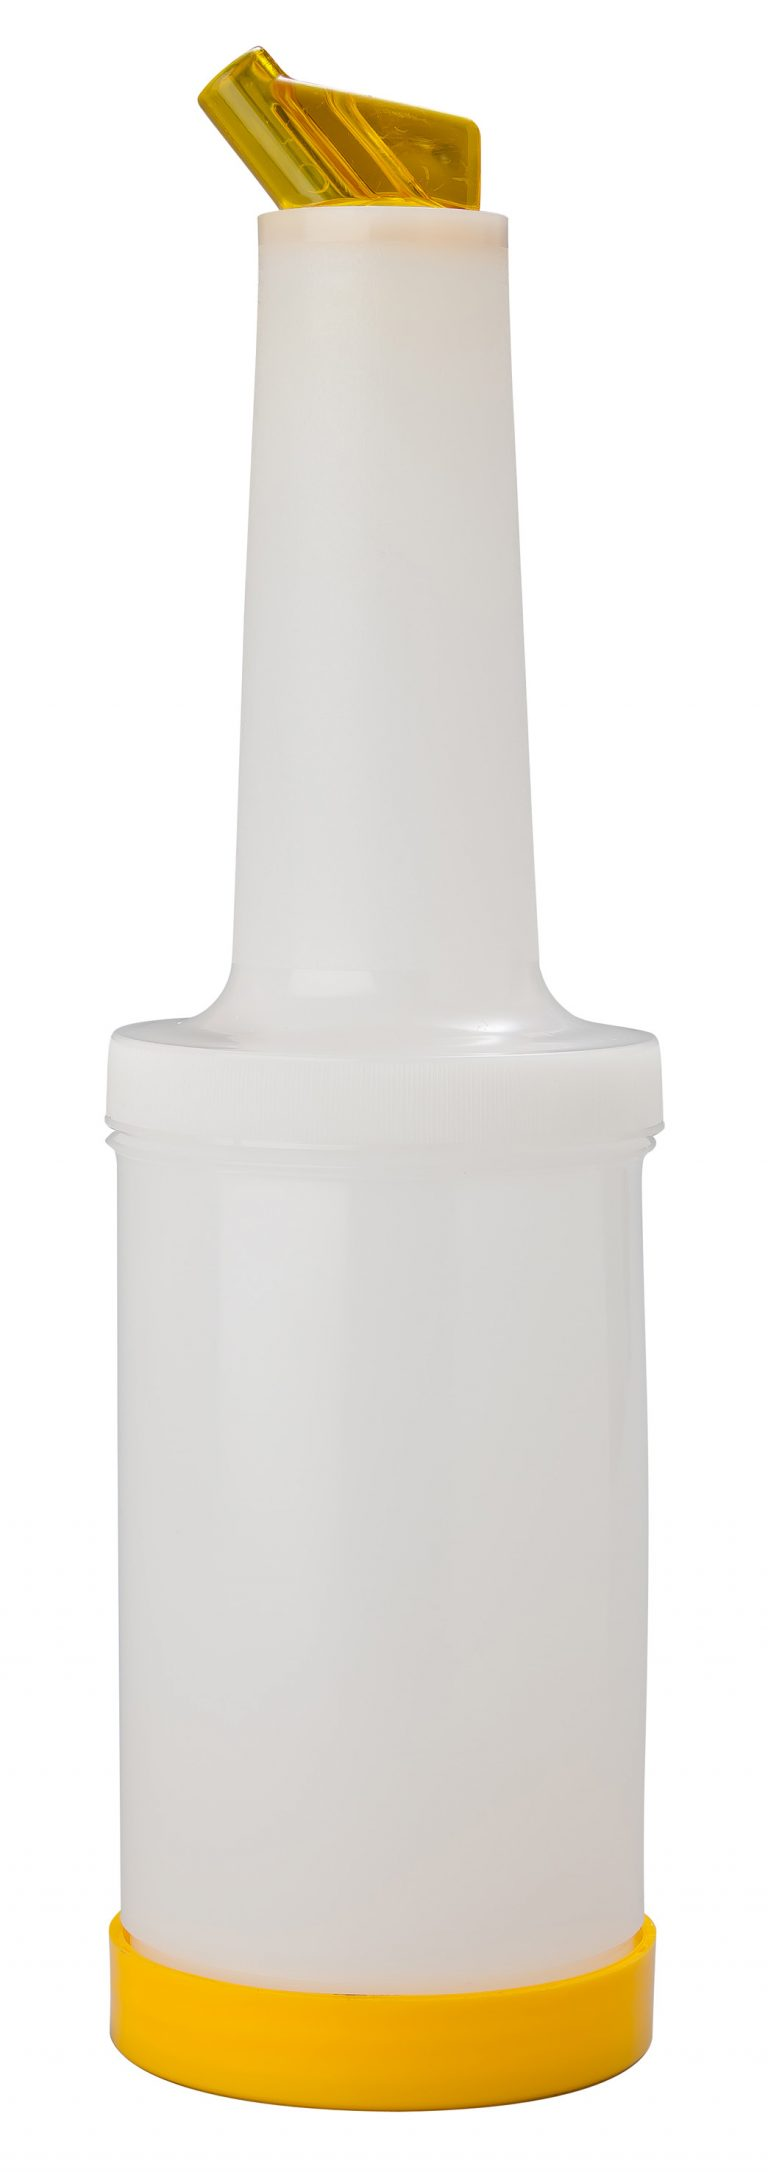 Save & Pour Bottle - Yellow